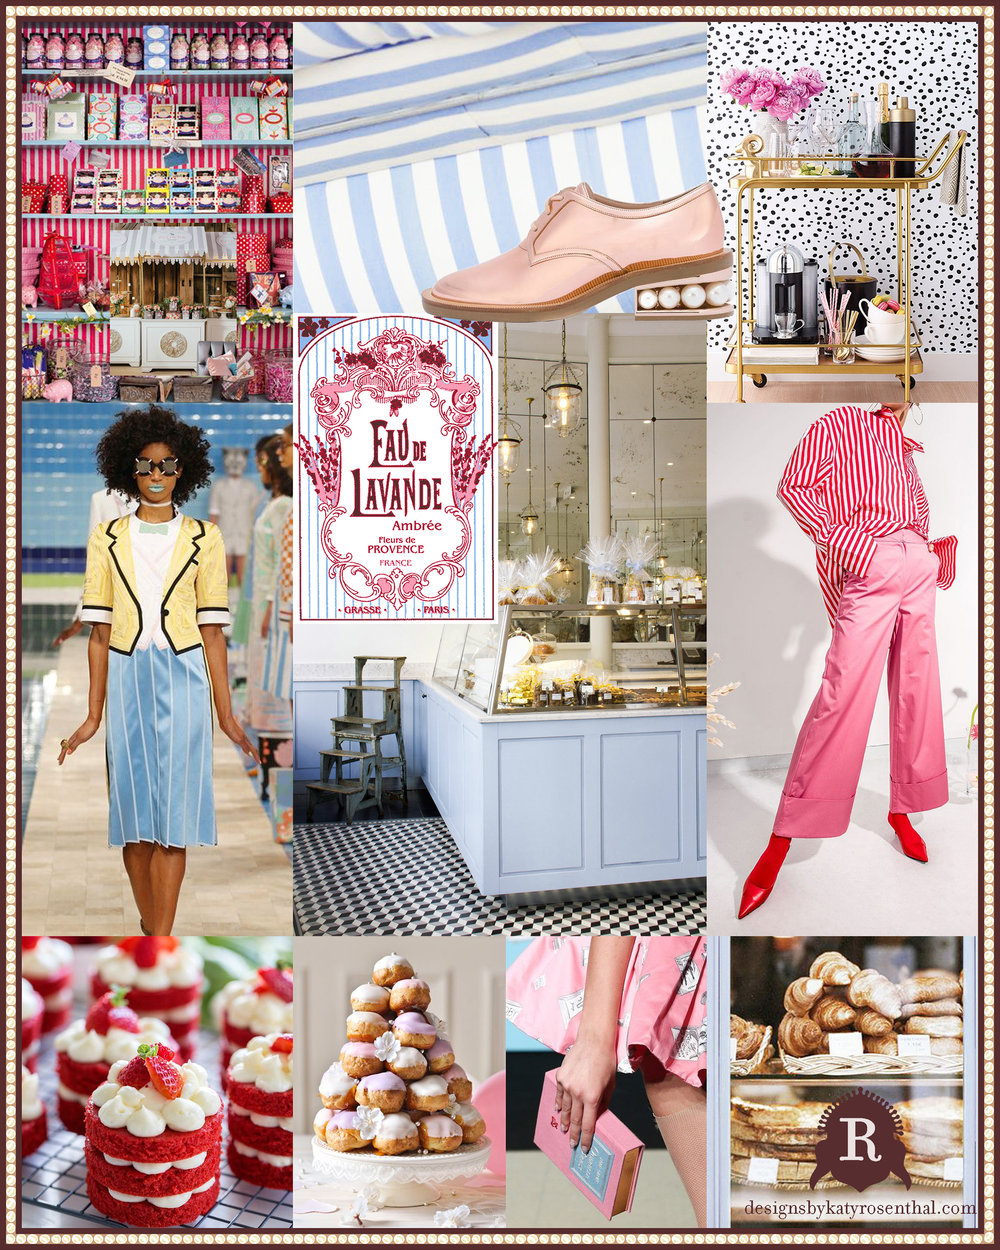 The inspiration board I created to reference for design decisions while creating the 'La Petite Patisserie' scarf.